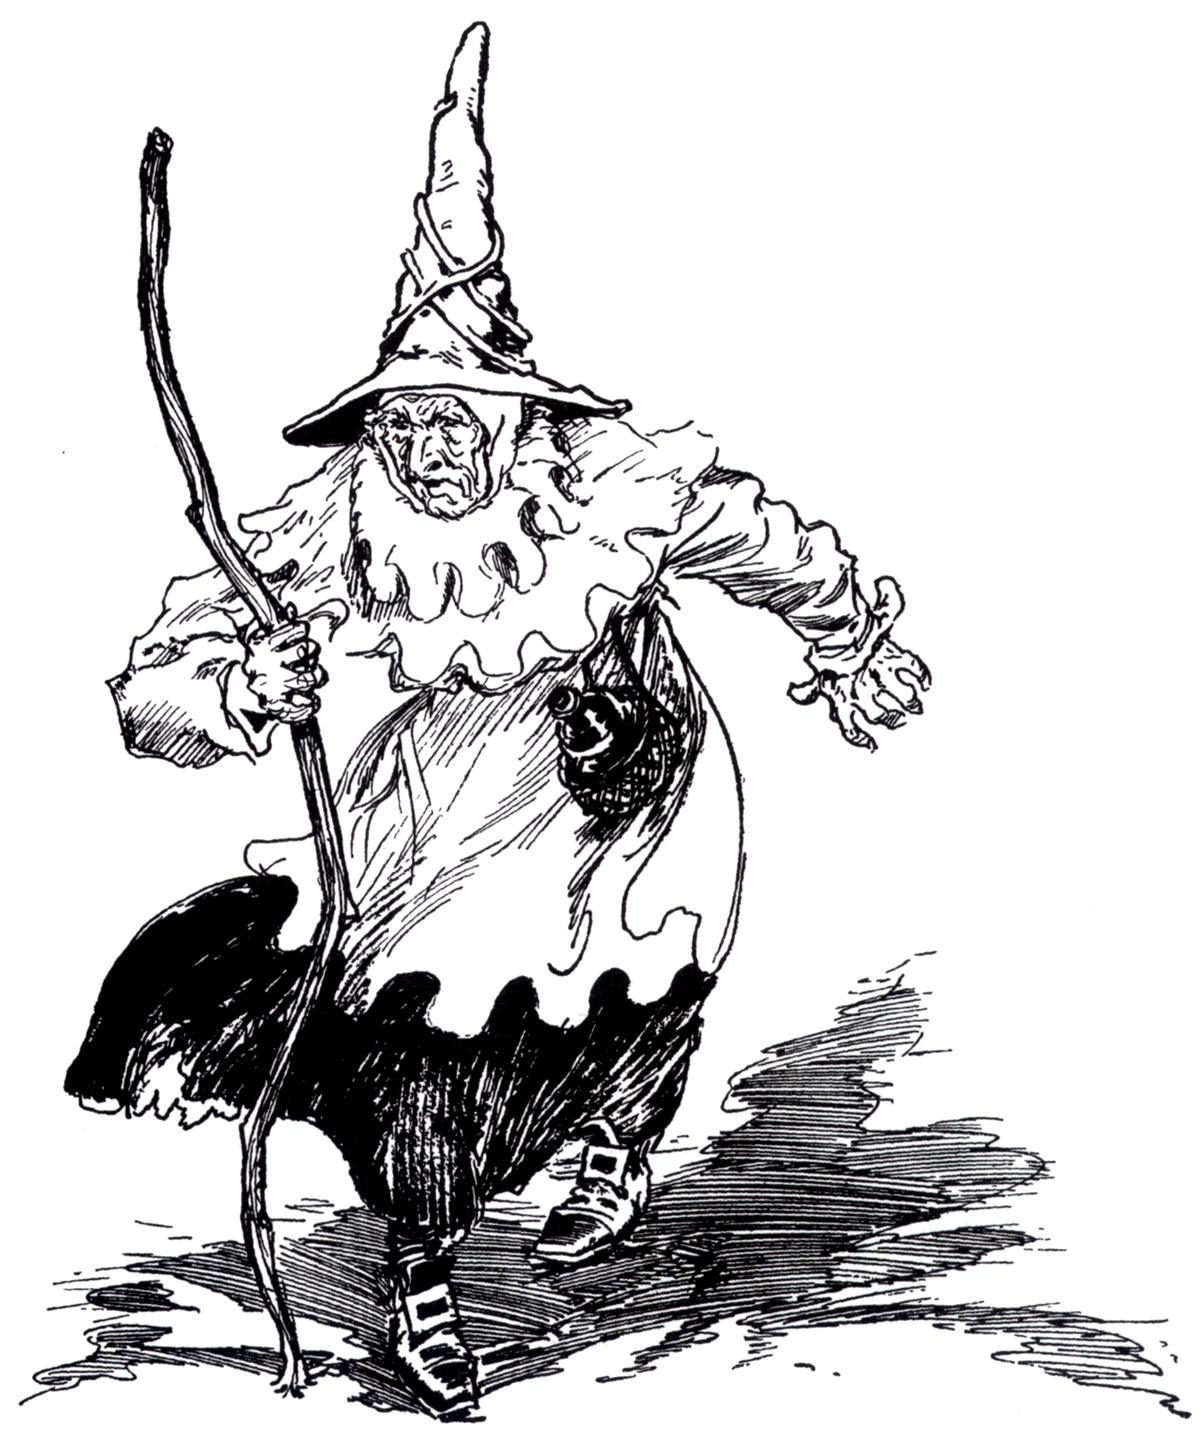 evil witch drawing at getdrawings com free for personal use evil